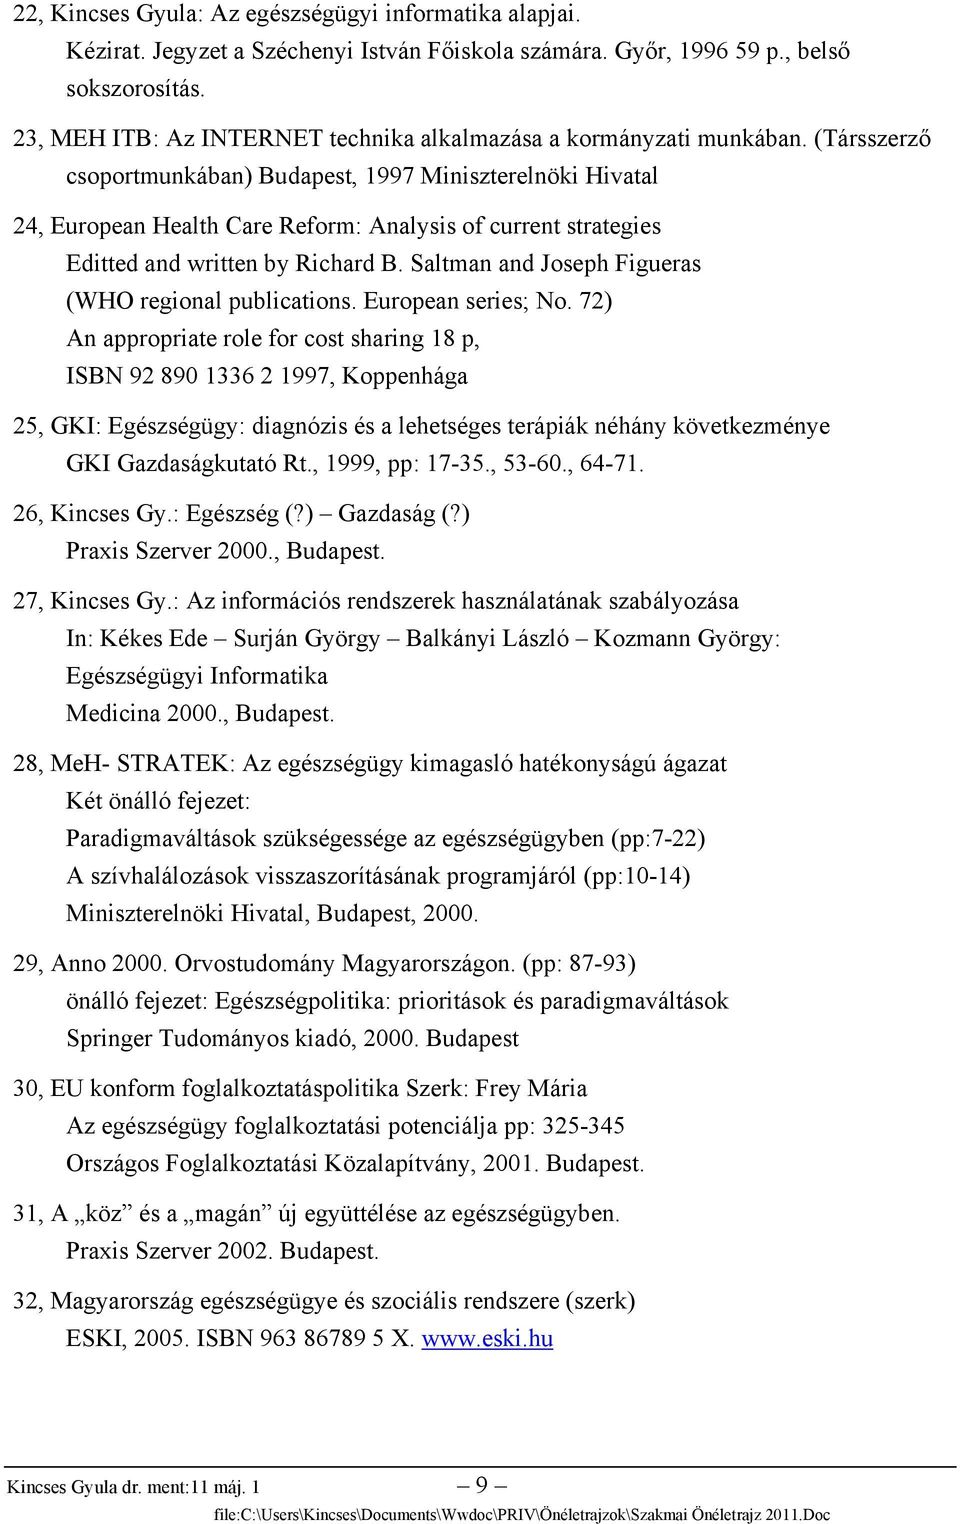 (Társszerző csoportmunkában) Budapest, 1997 Miniszterelnöki Hivatal 24, European Health Care Reform: Analysis of current strategies Editted and written by Richard B.